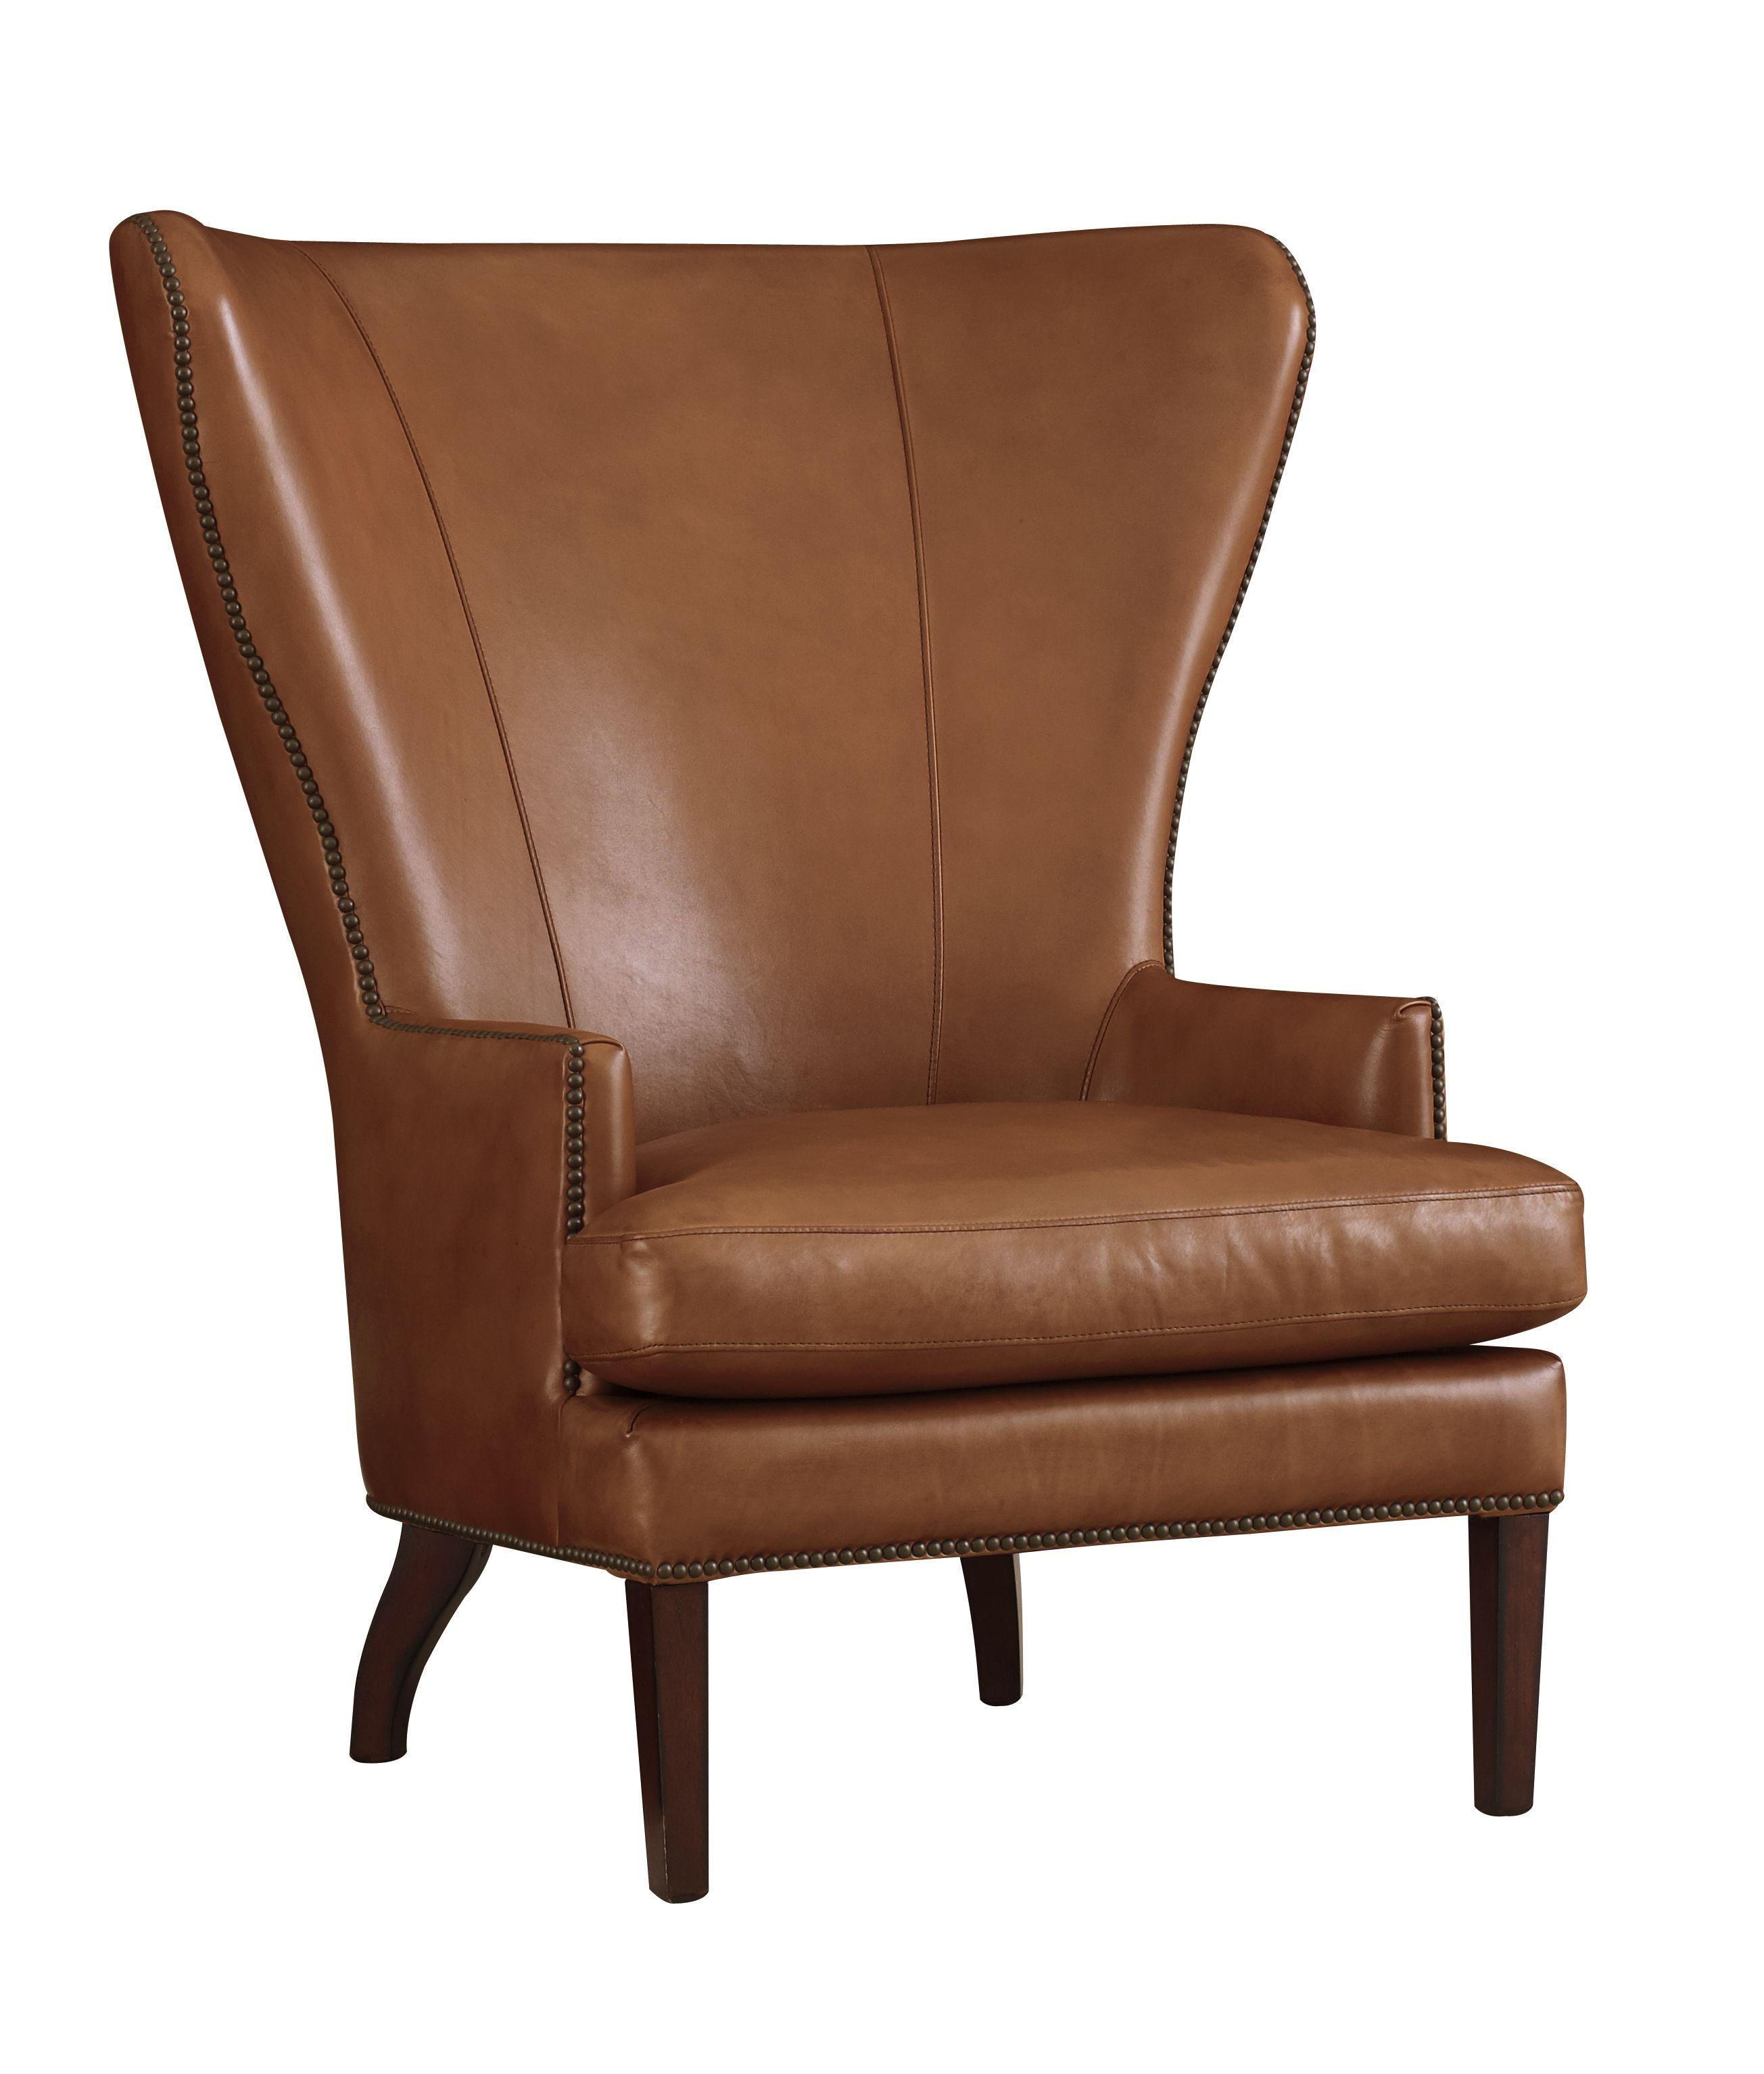 This Leather Chair From Henredon Makes A Handsome Addition To Your Living  Room Or Study.